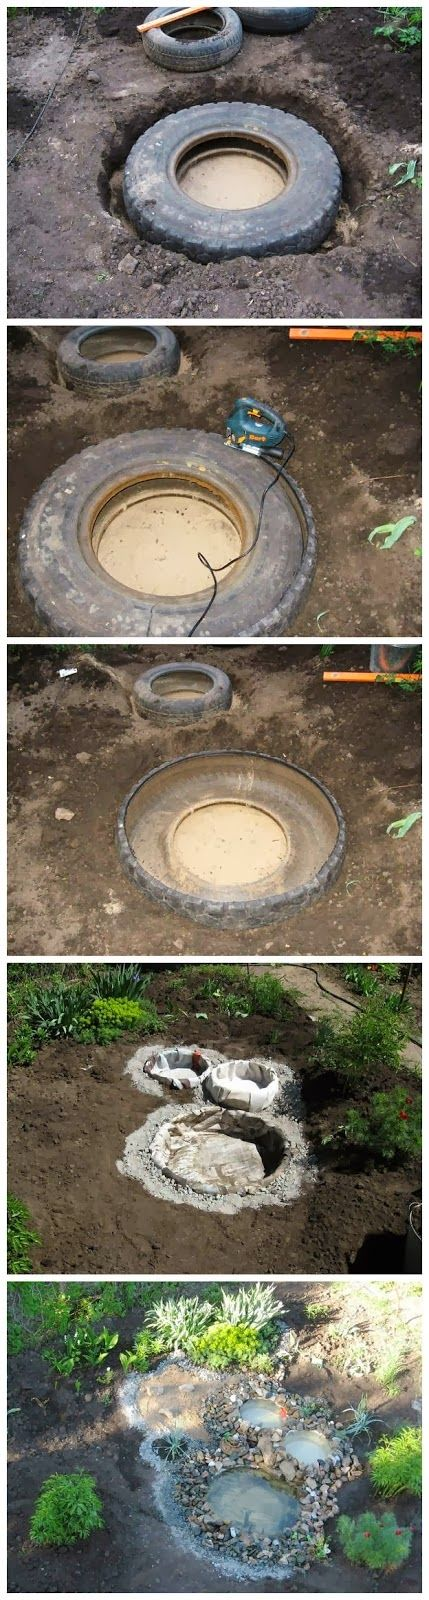 Recycled tires pond - totally use for garden/tomato areas